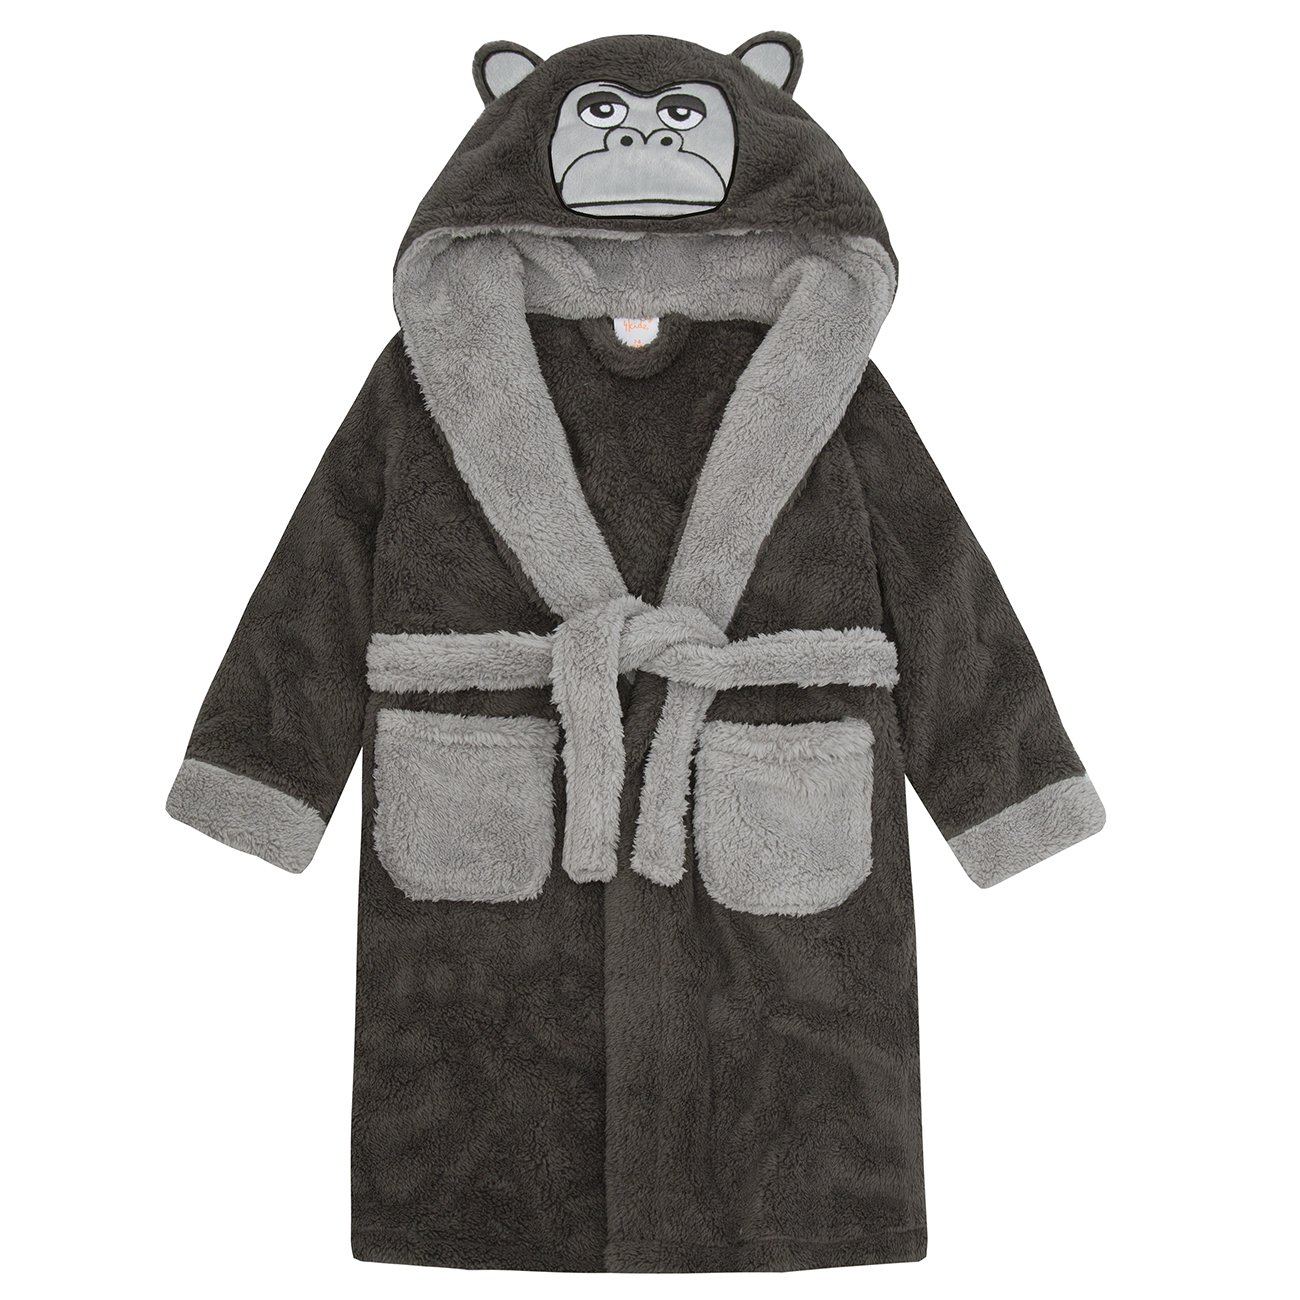 4Kidz Childrens/Boys Gorilla Snuggle Fleece Hooded Dressing Gown ~ 7-13 Years